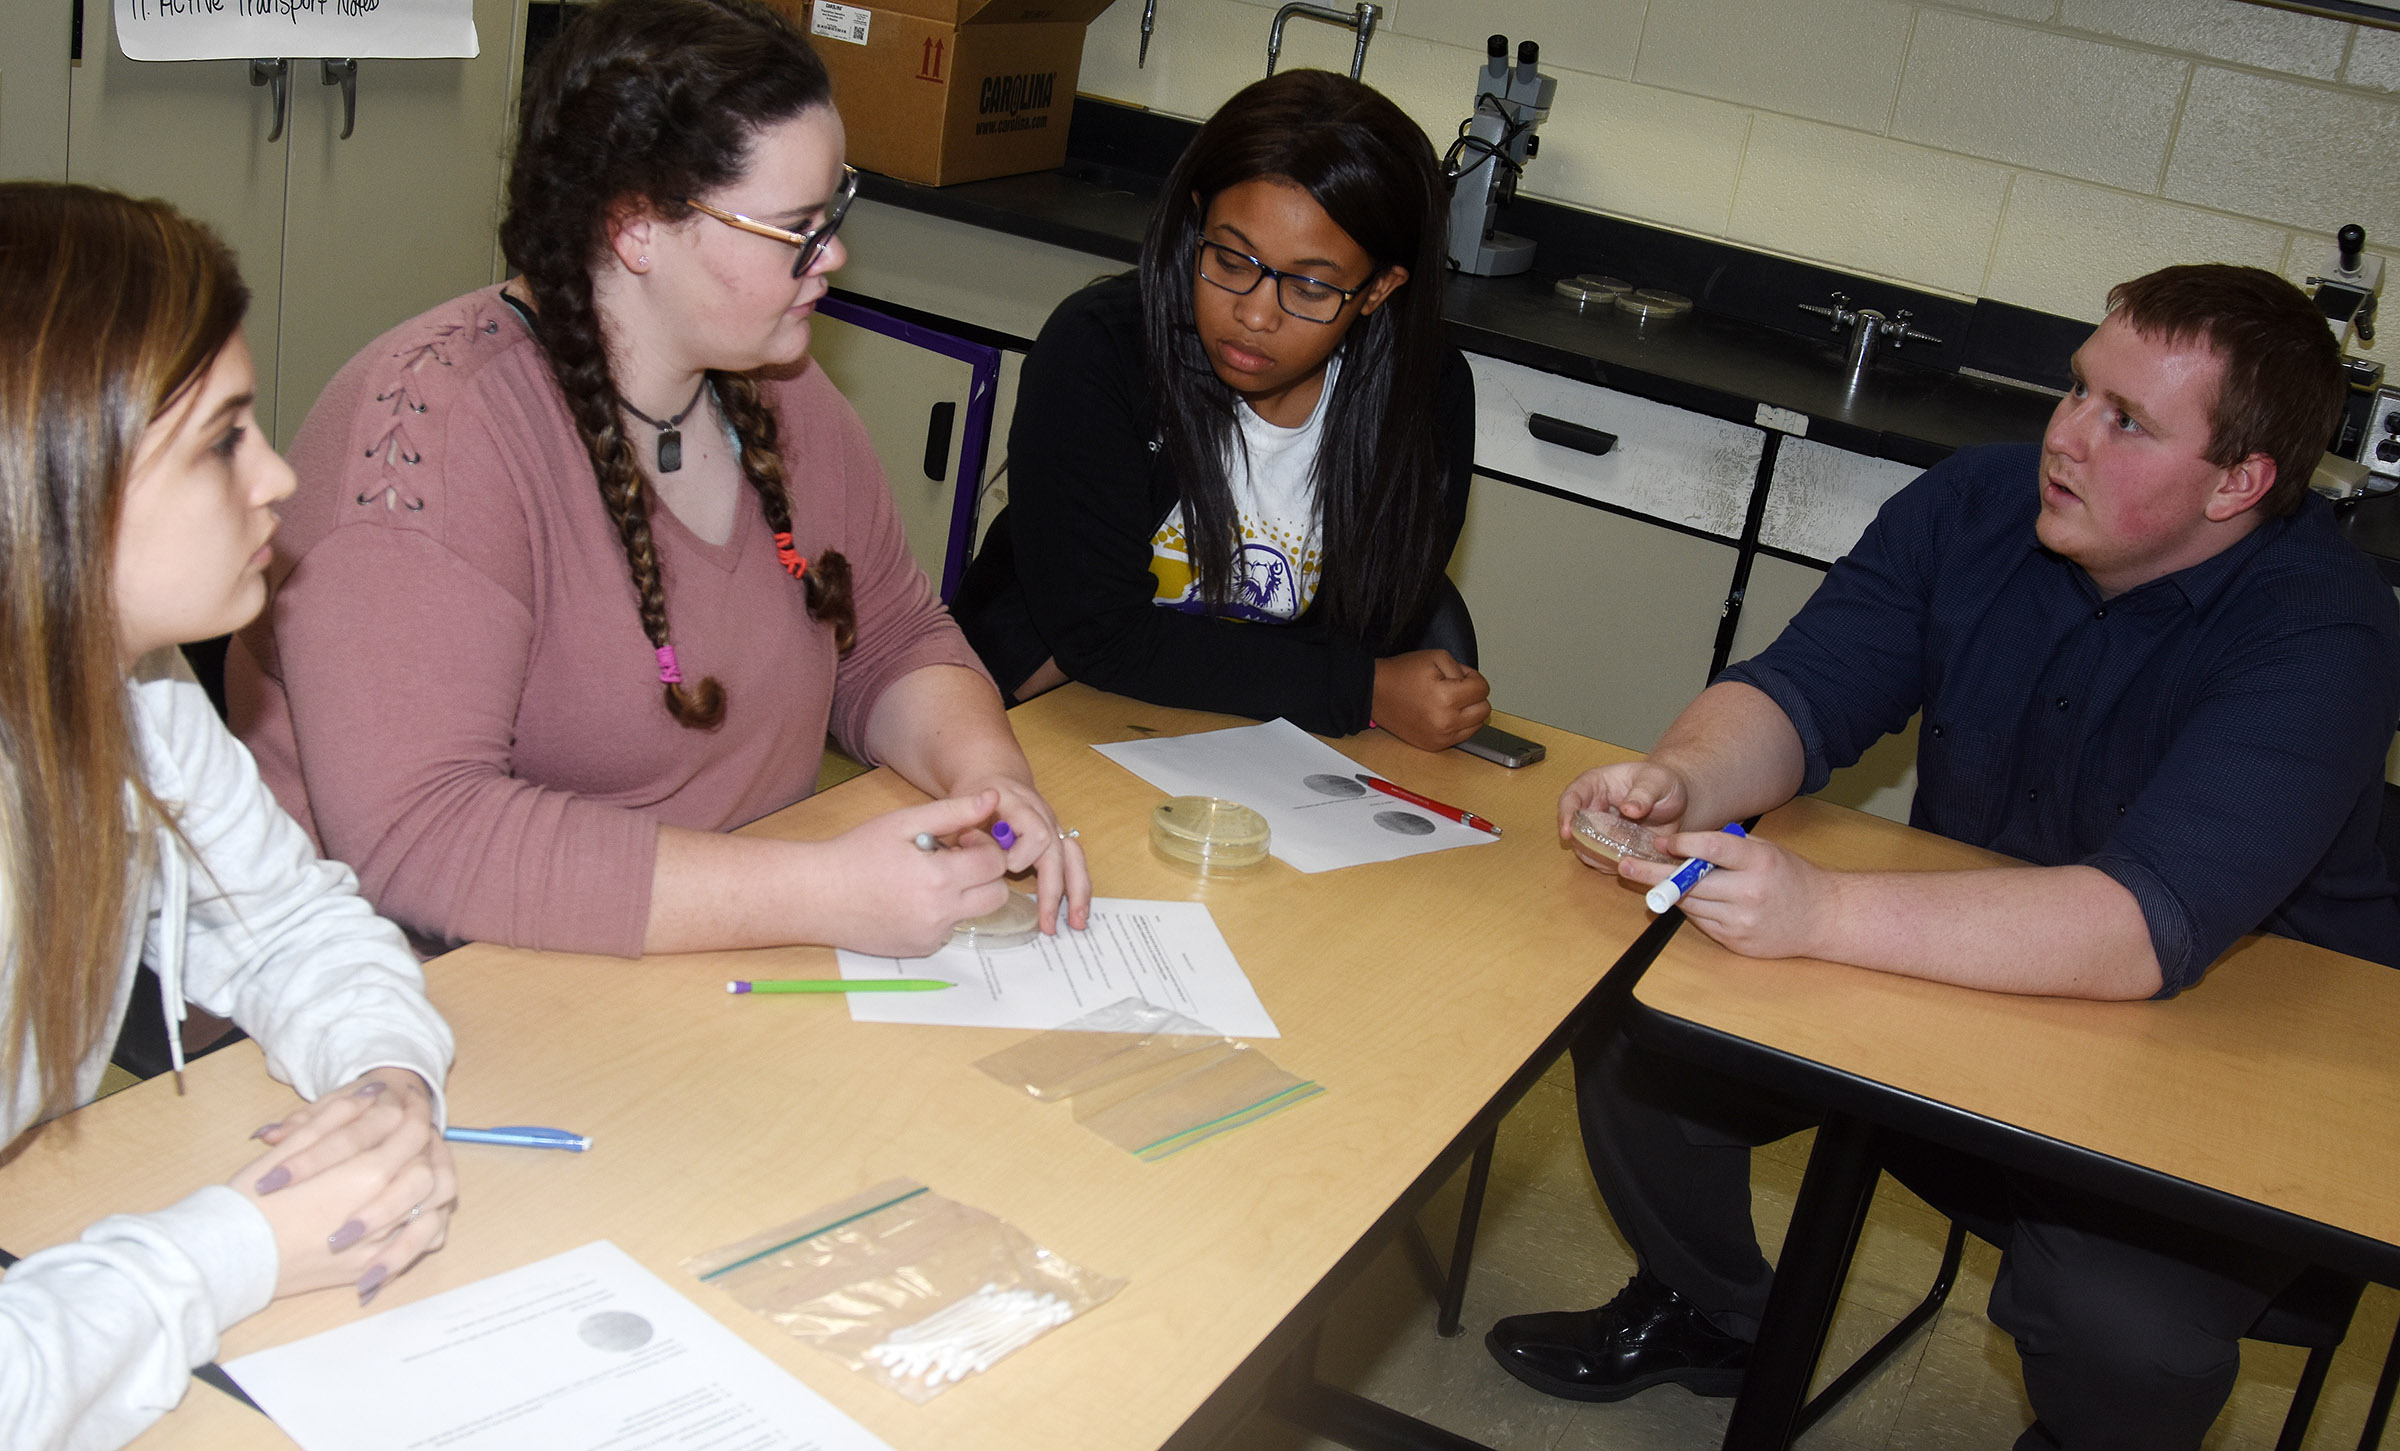 Campbellsville University student teacher T.J. Rahill talks to, from left, freshman Carly Adams and sophomores Shallan Philpott and Ketayah Taylor about how to collect bacteria.